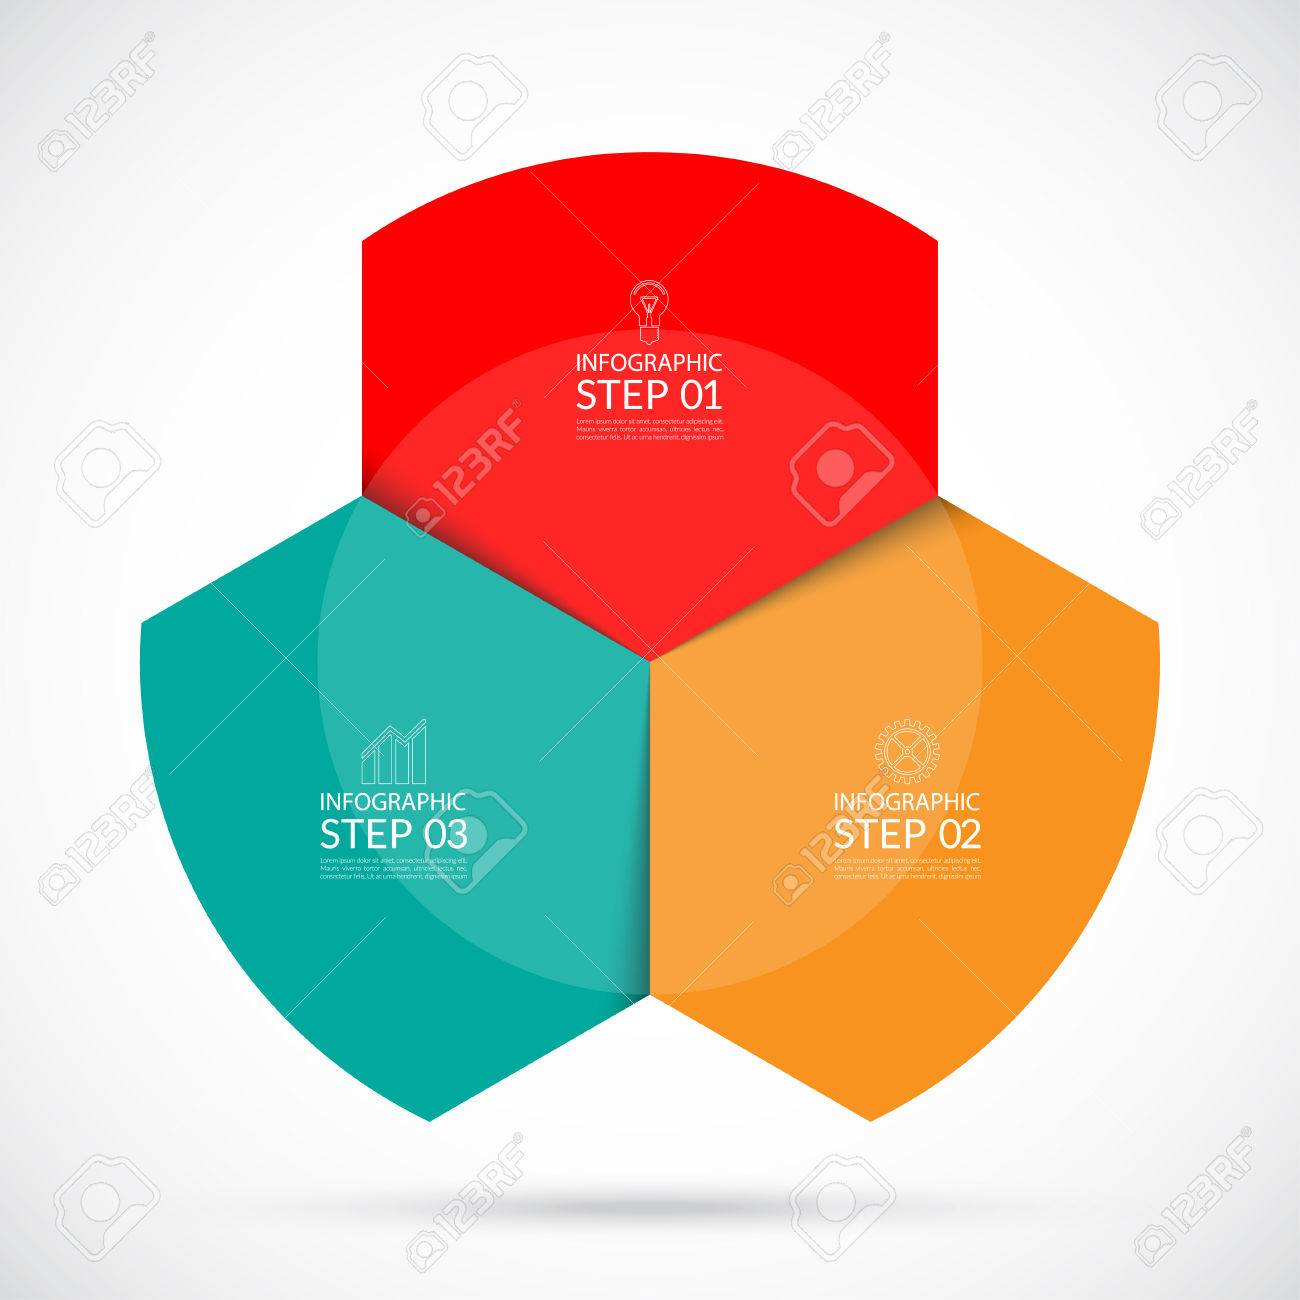 infographic circular template can be used for web diagram